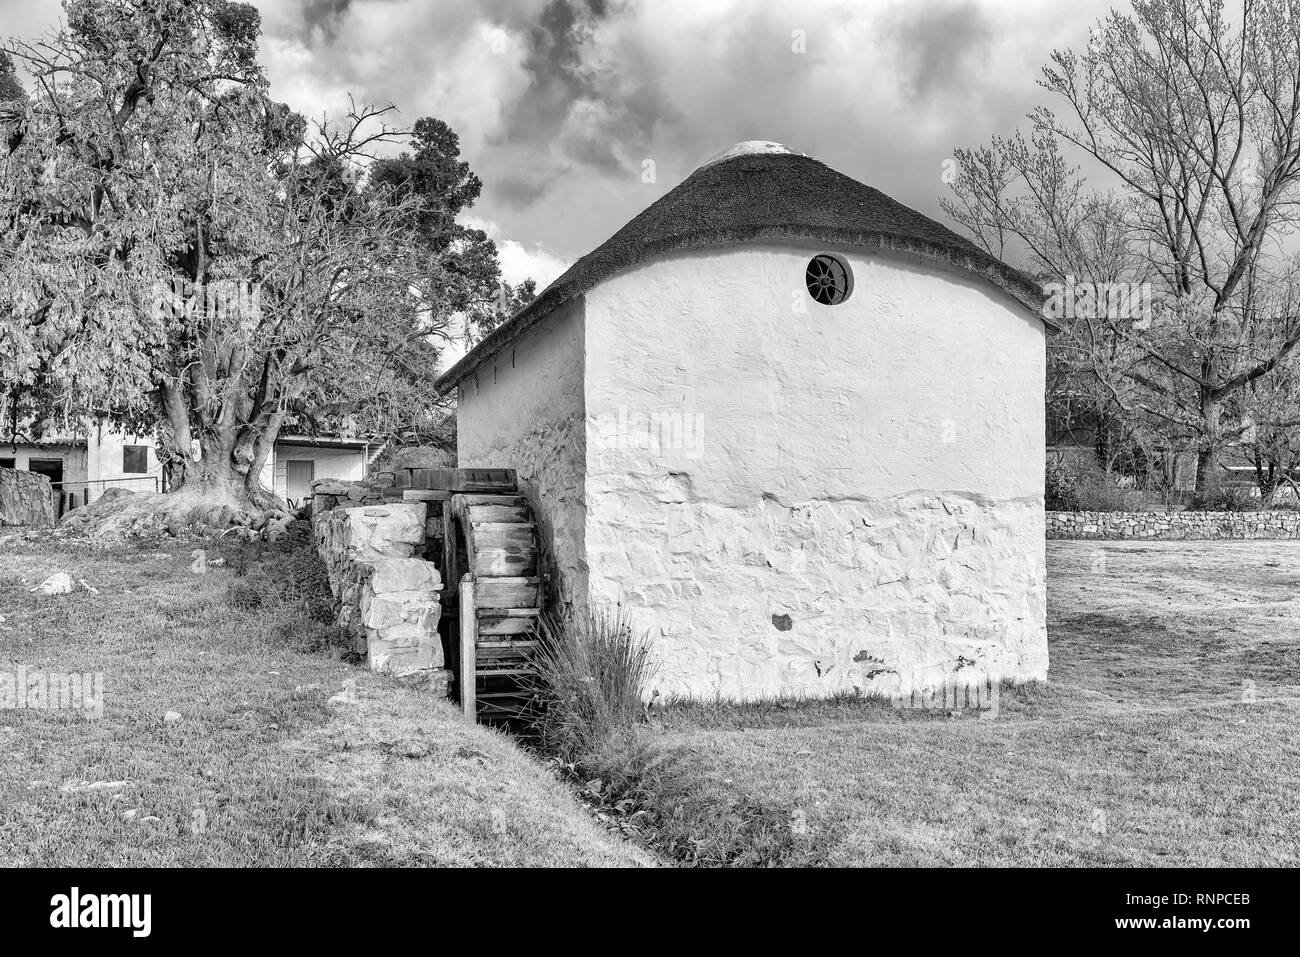 KROMRIVIER, SOUTH AFRICA, AUGUST 25, 2018: The historic water mill at Kromrivier Cederberg Park, a holiday resort in the Cederberg Mountains. Monochro - Stock Image